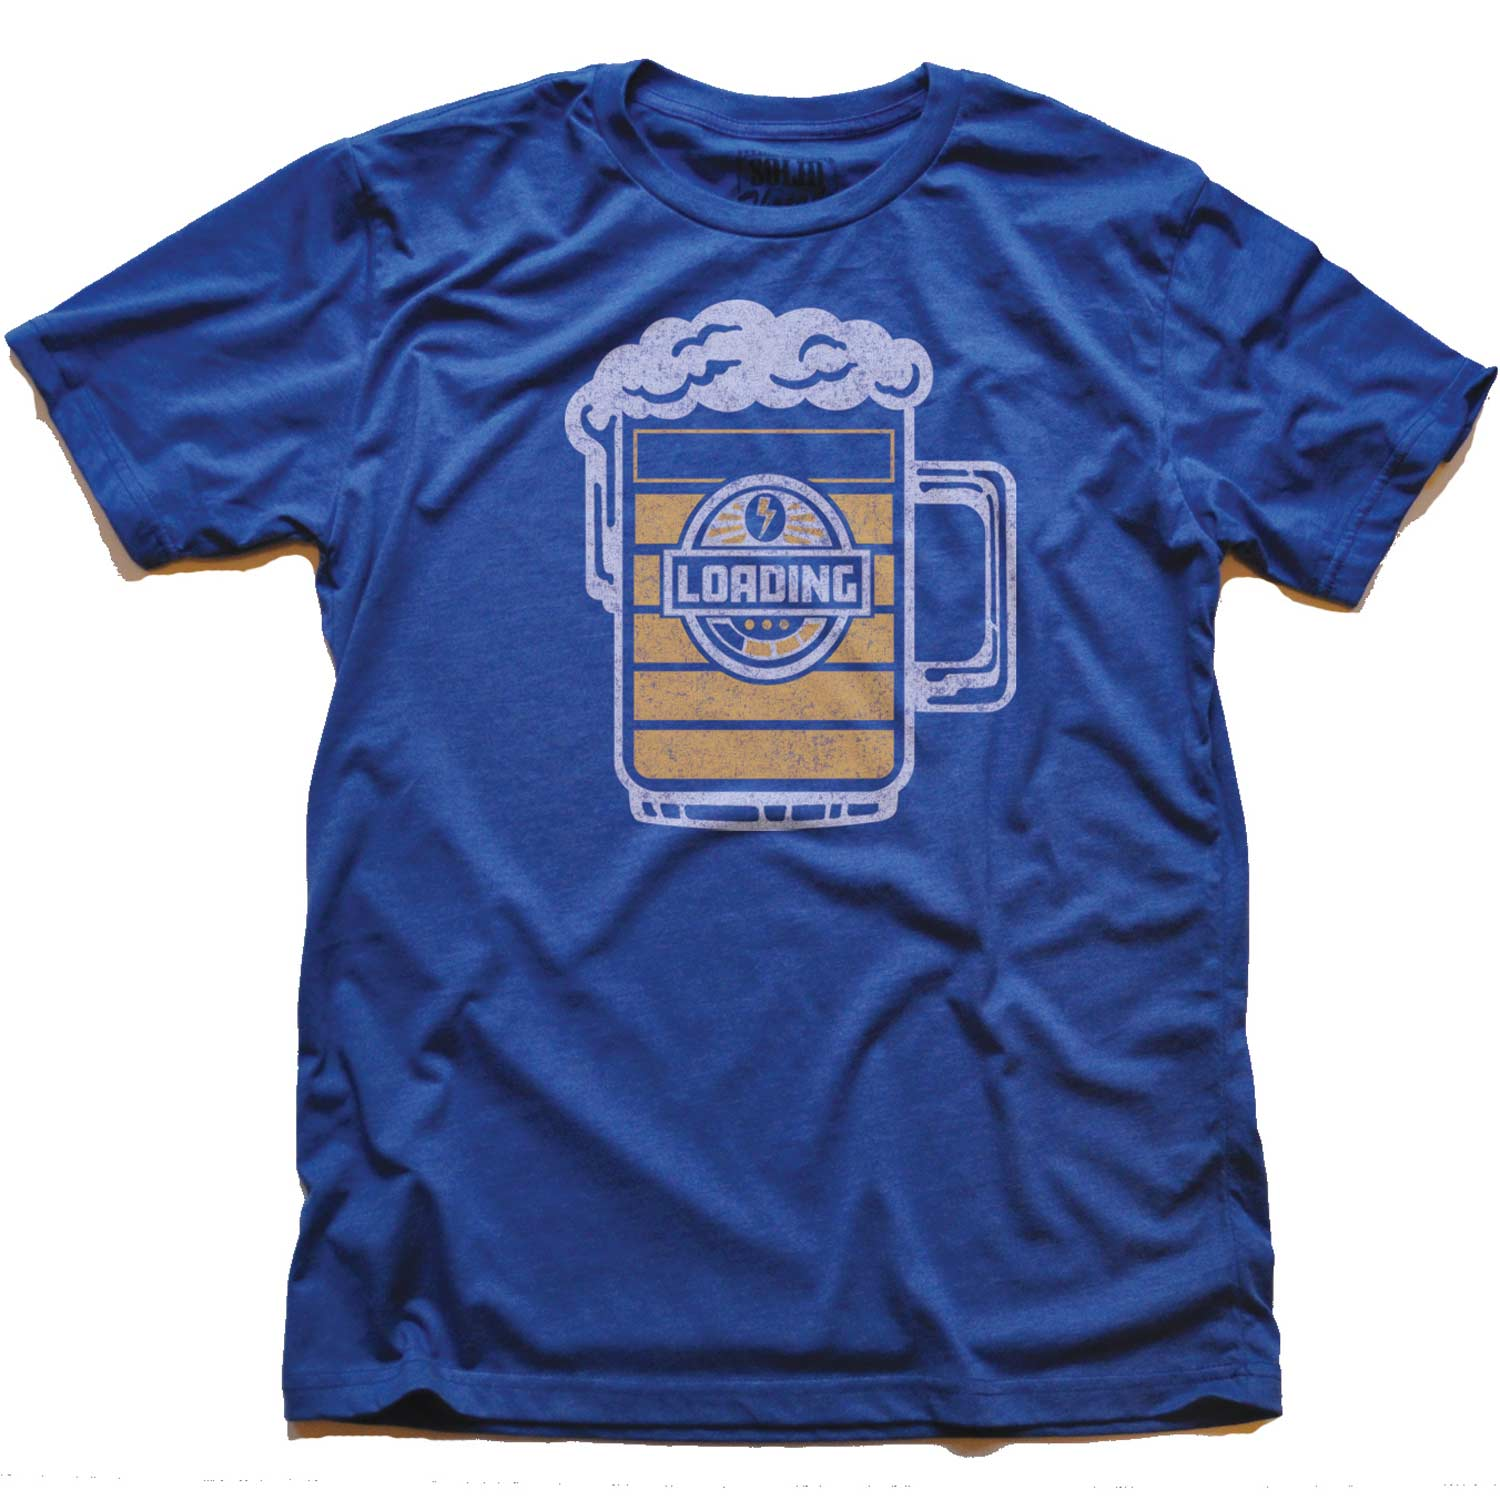 Men's Beer Loading Vintage Inspired T-shirt | Cool Retro Tee with Funny Drinking Graphic | Solid Threads